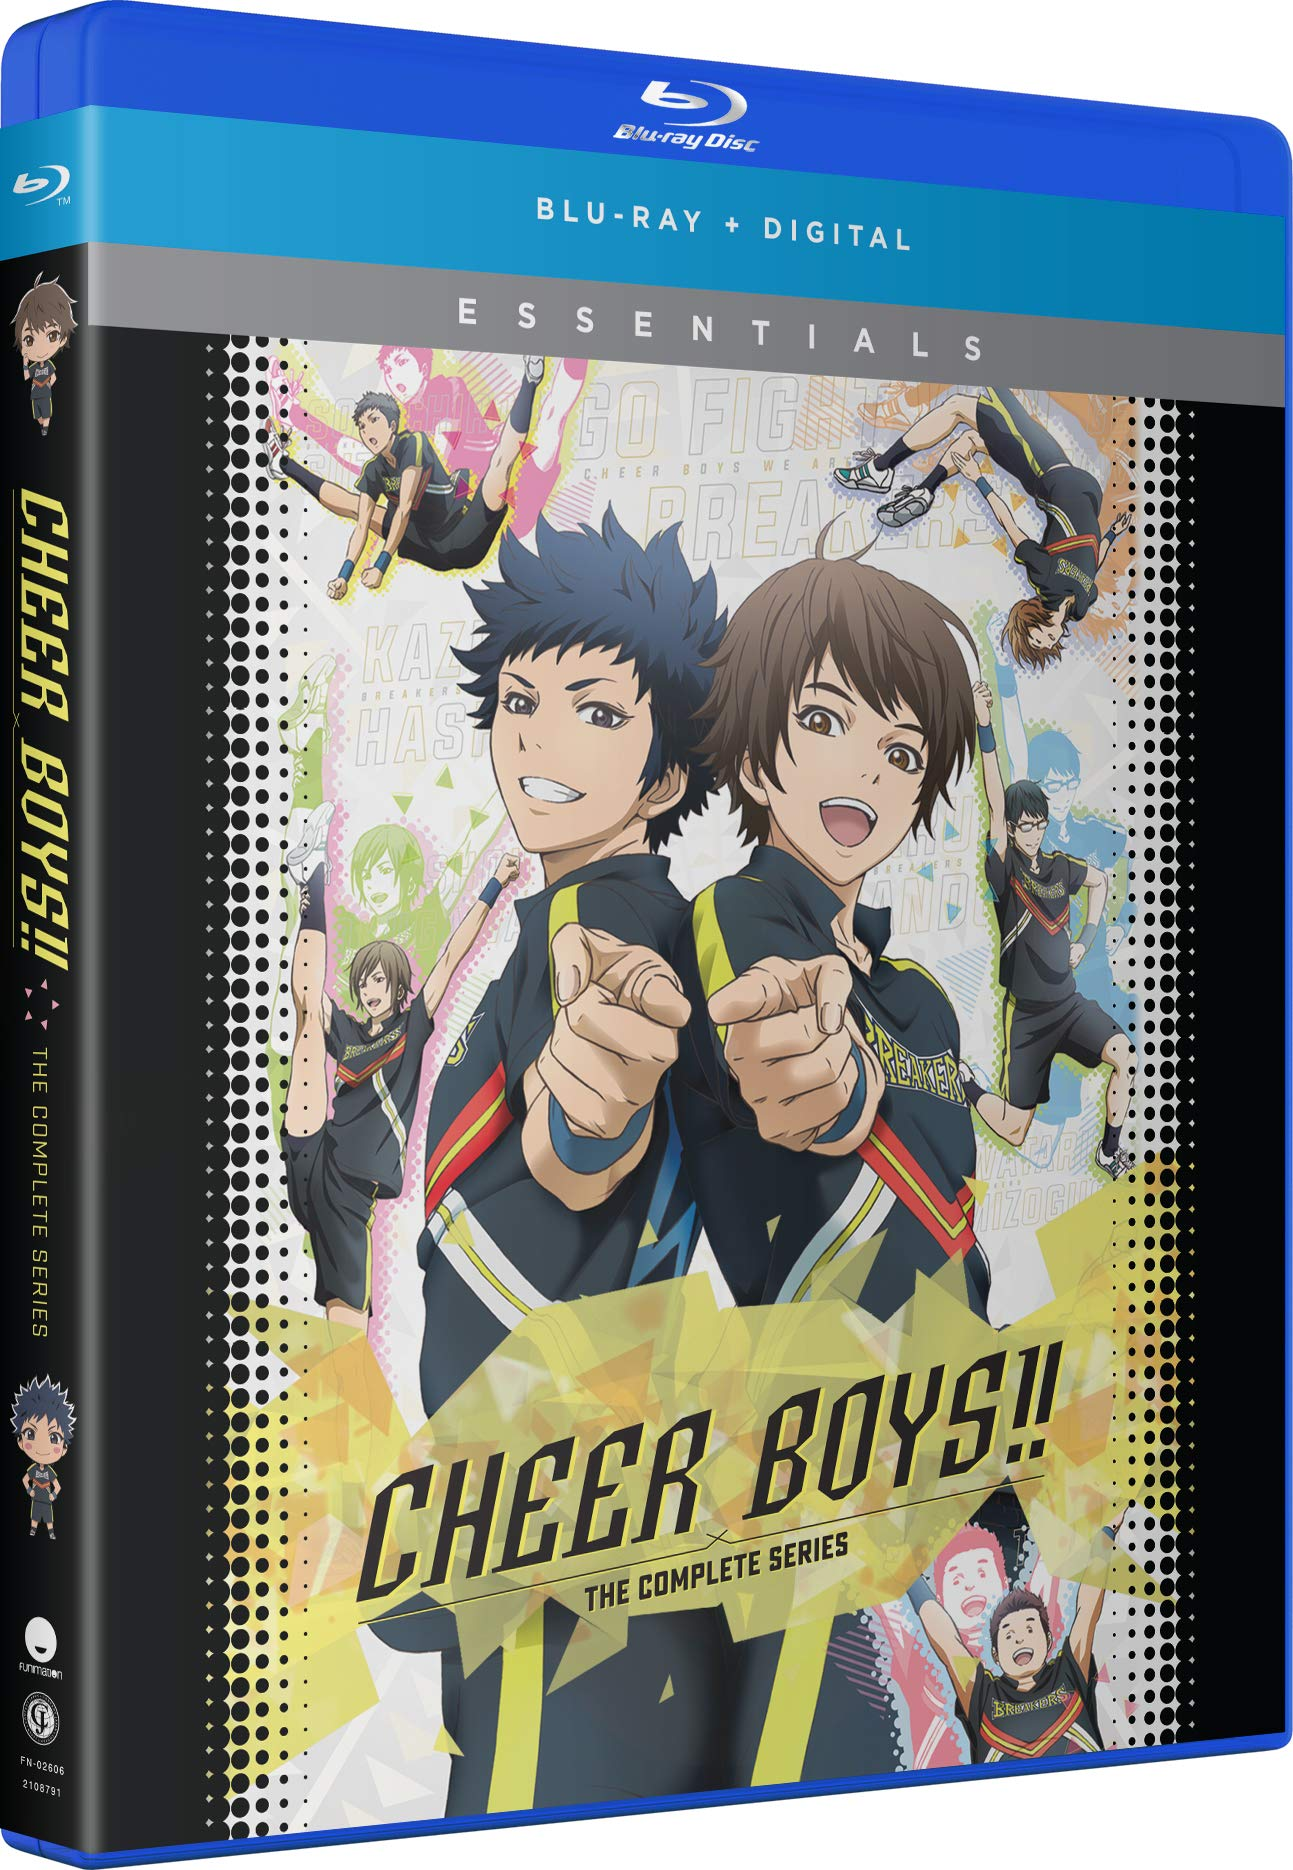 Blu-ray : Cheer Boys!!: The Complete Series (Digital Copy, Subtitled)